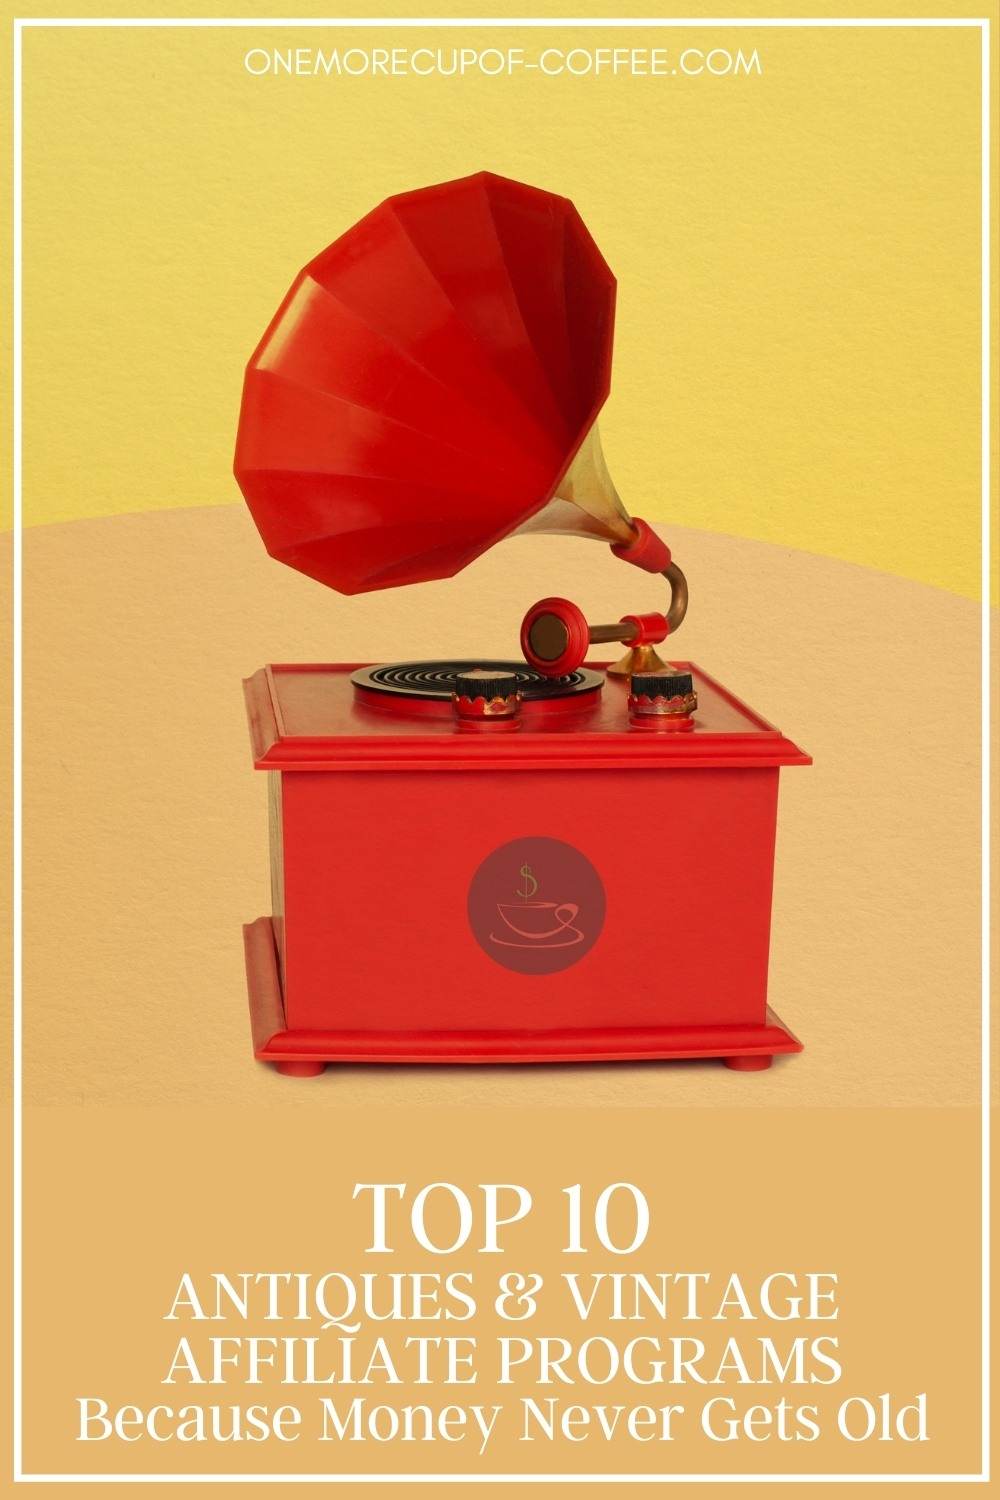 """red vintage record player against a yellow background; with text overlay """"Top 10 Antiques & Vintage Affiliate Programs Because Money Never Gets Old"""""""